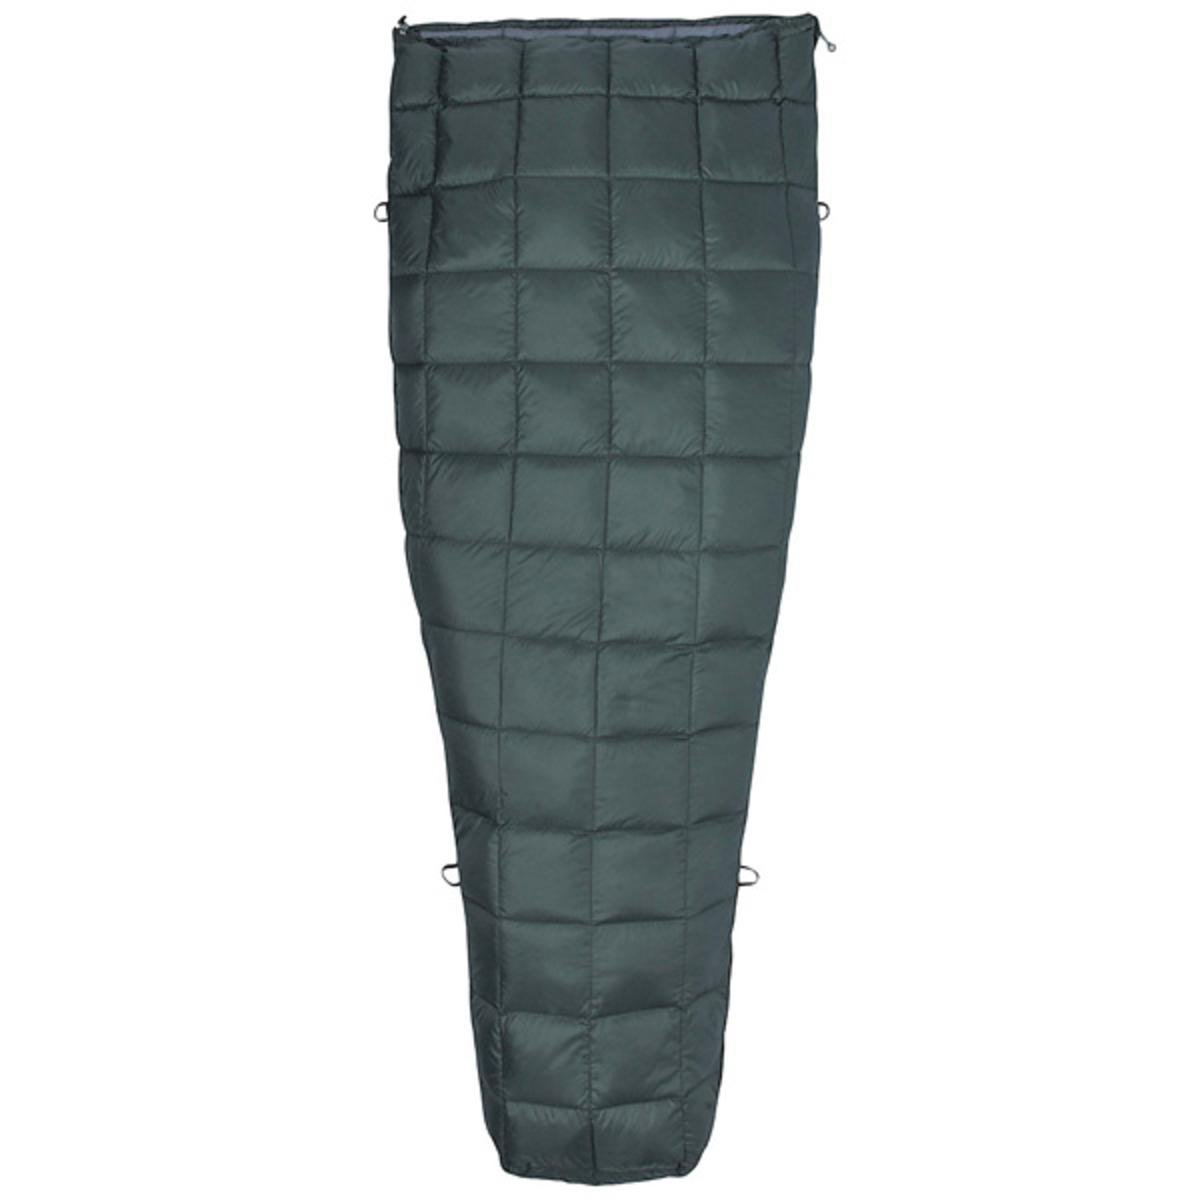 An image of Marmot Micron 50 Sleeping Bag